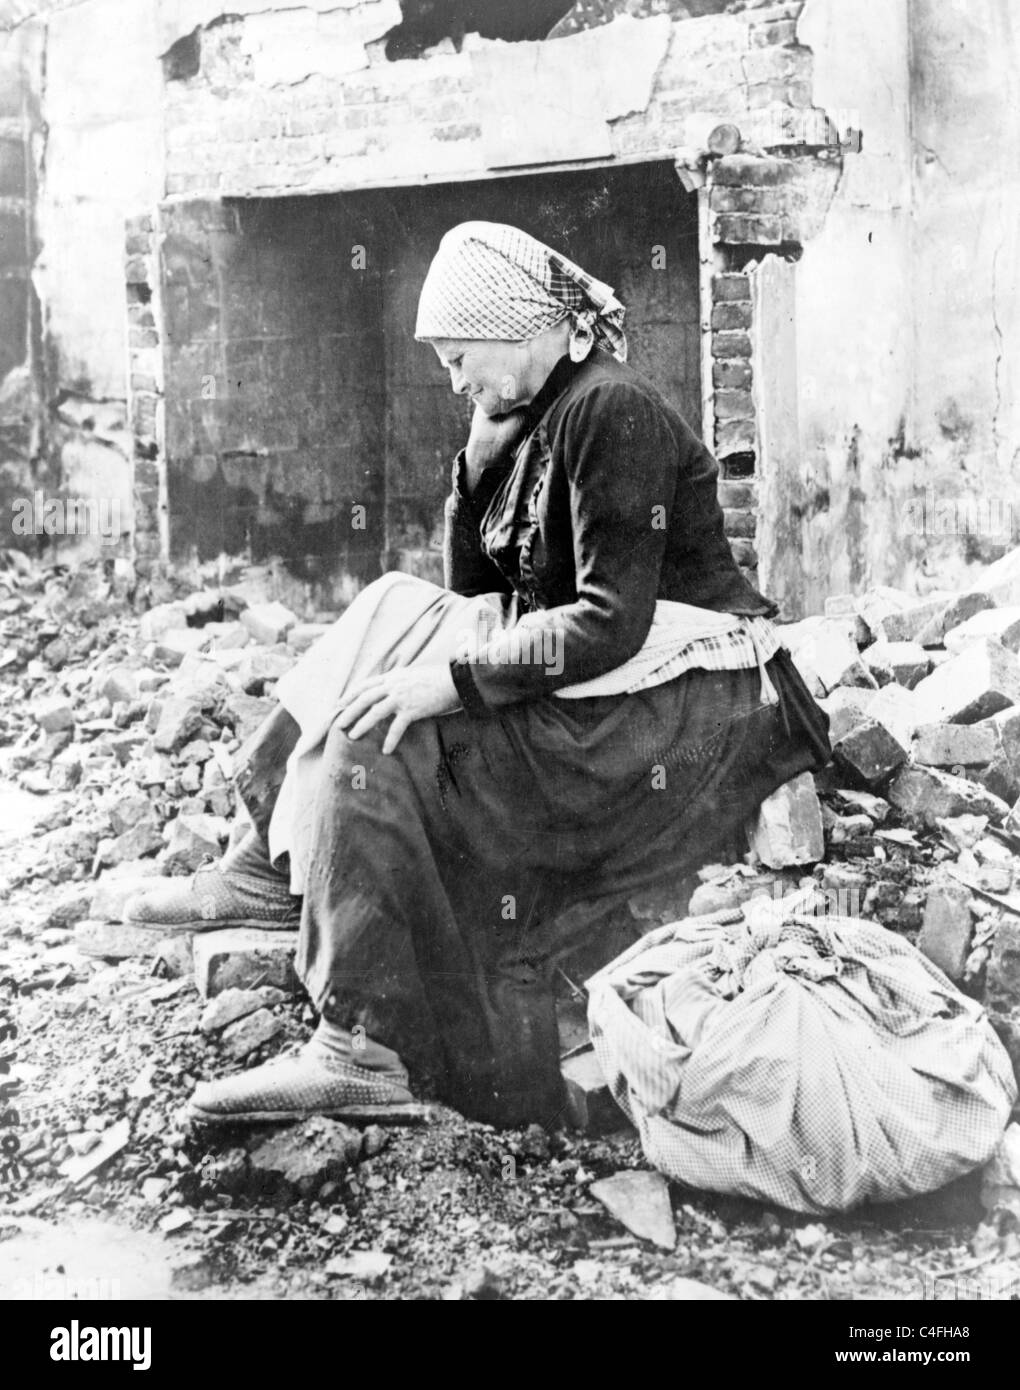 French woman returns to her wartime home to find it in ruins. Elderly woman seated at ruins of her home in the Somme - Stock Image